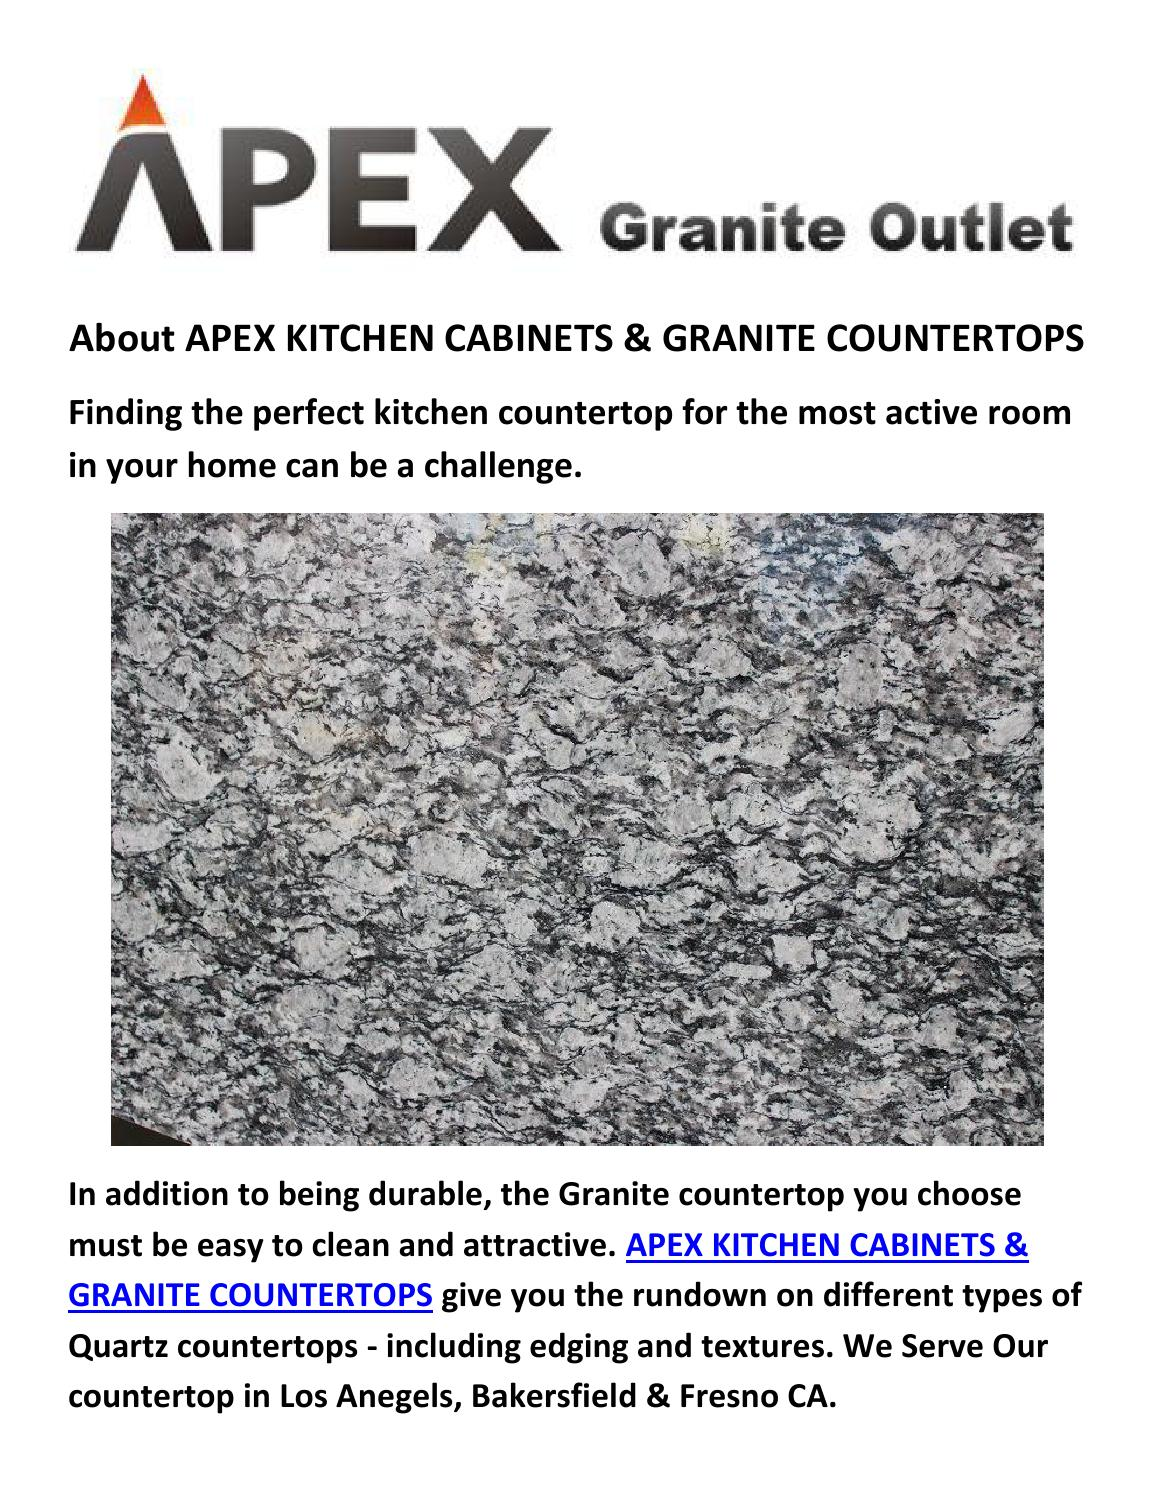 Apex Kitchen Cabinets Granite Counter By Apex Kitchen Cabinets Granite Countertops Issuu